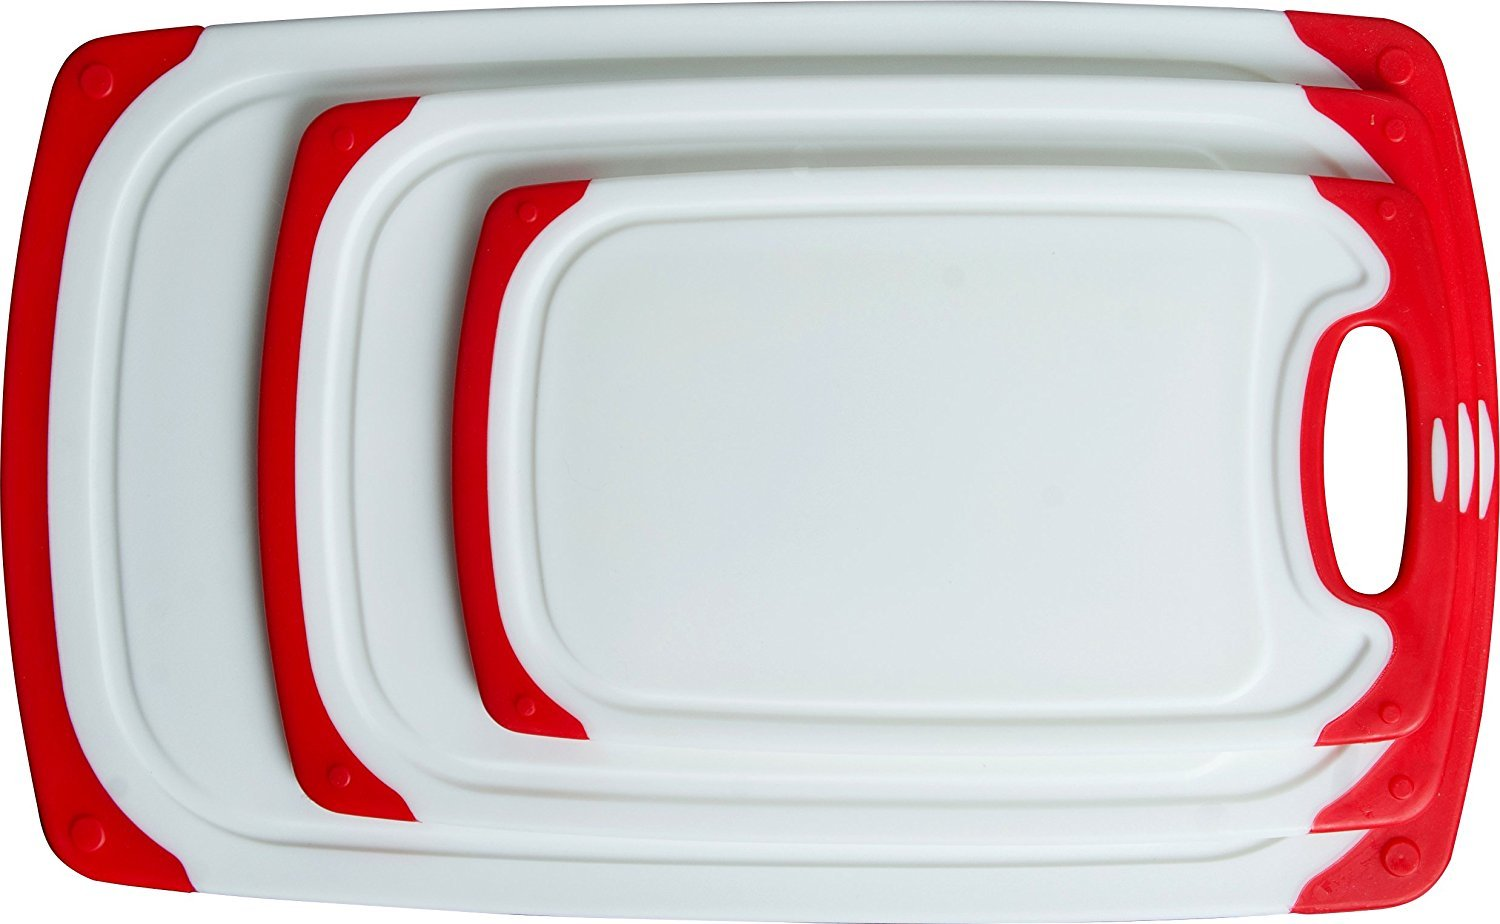 CC Boards 3-Piece Nonslip Cutting Board Set: Red and white plastic kitchen carving boards, each with juice groove and nonskid handle; dishwasher safe Lake House Products LHP002